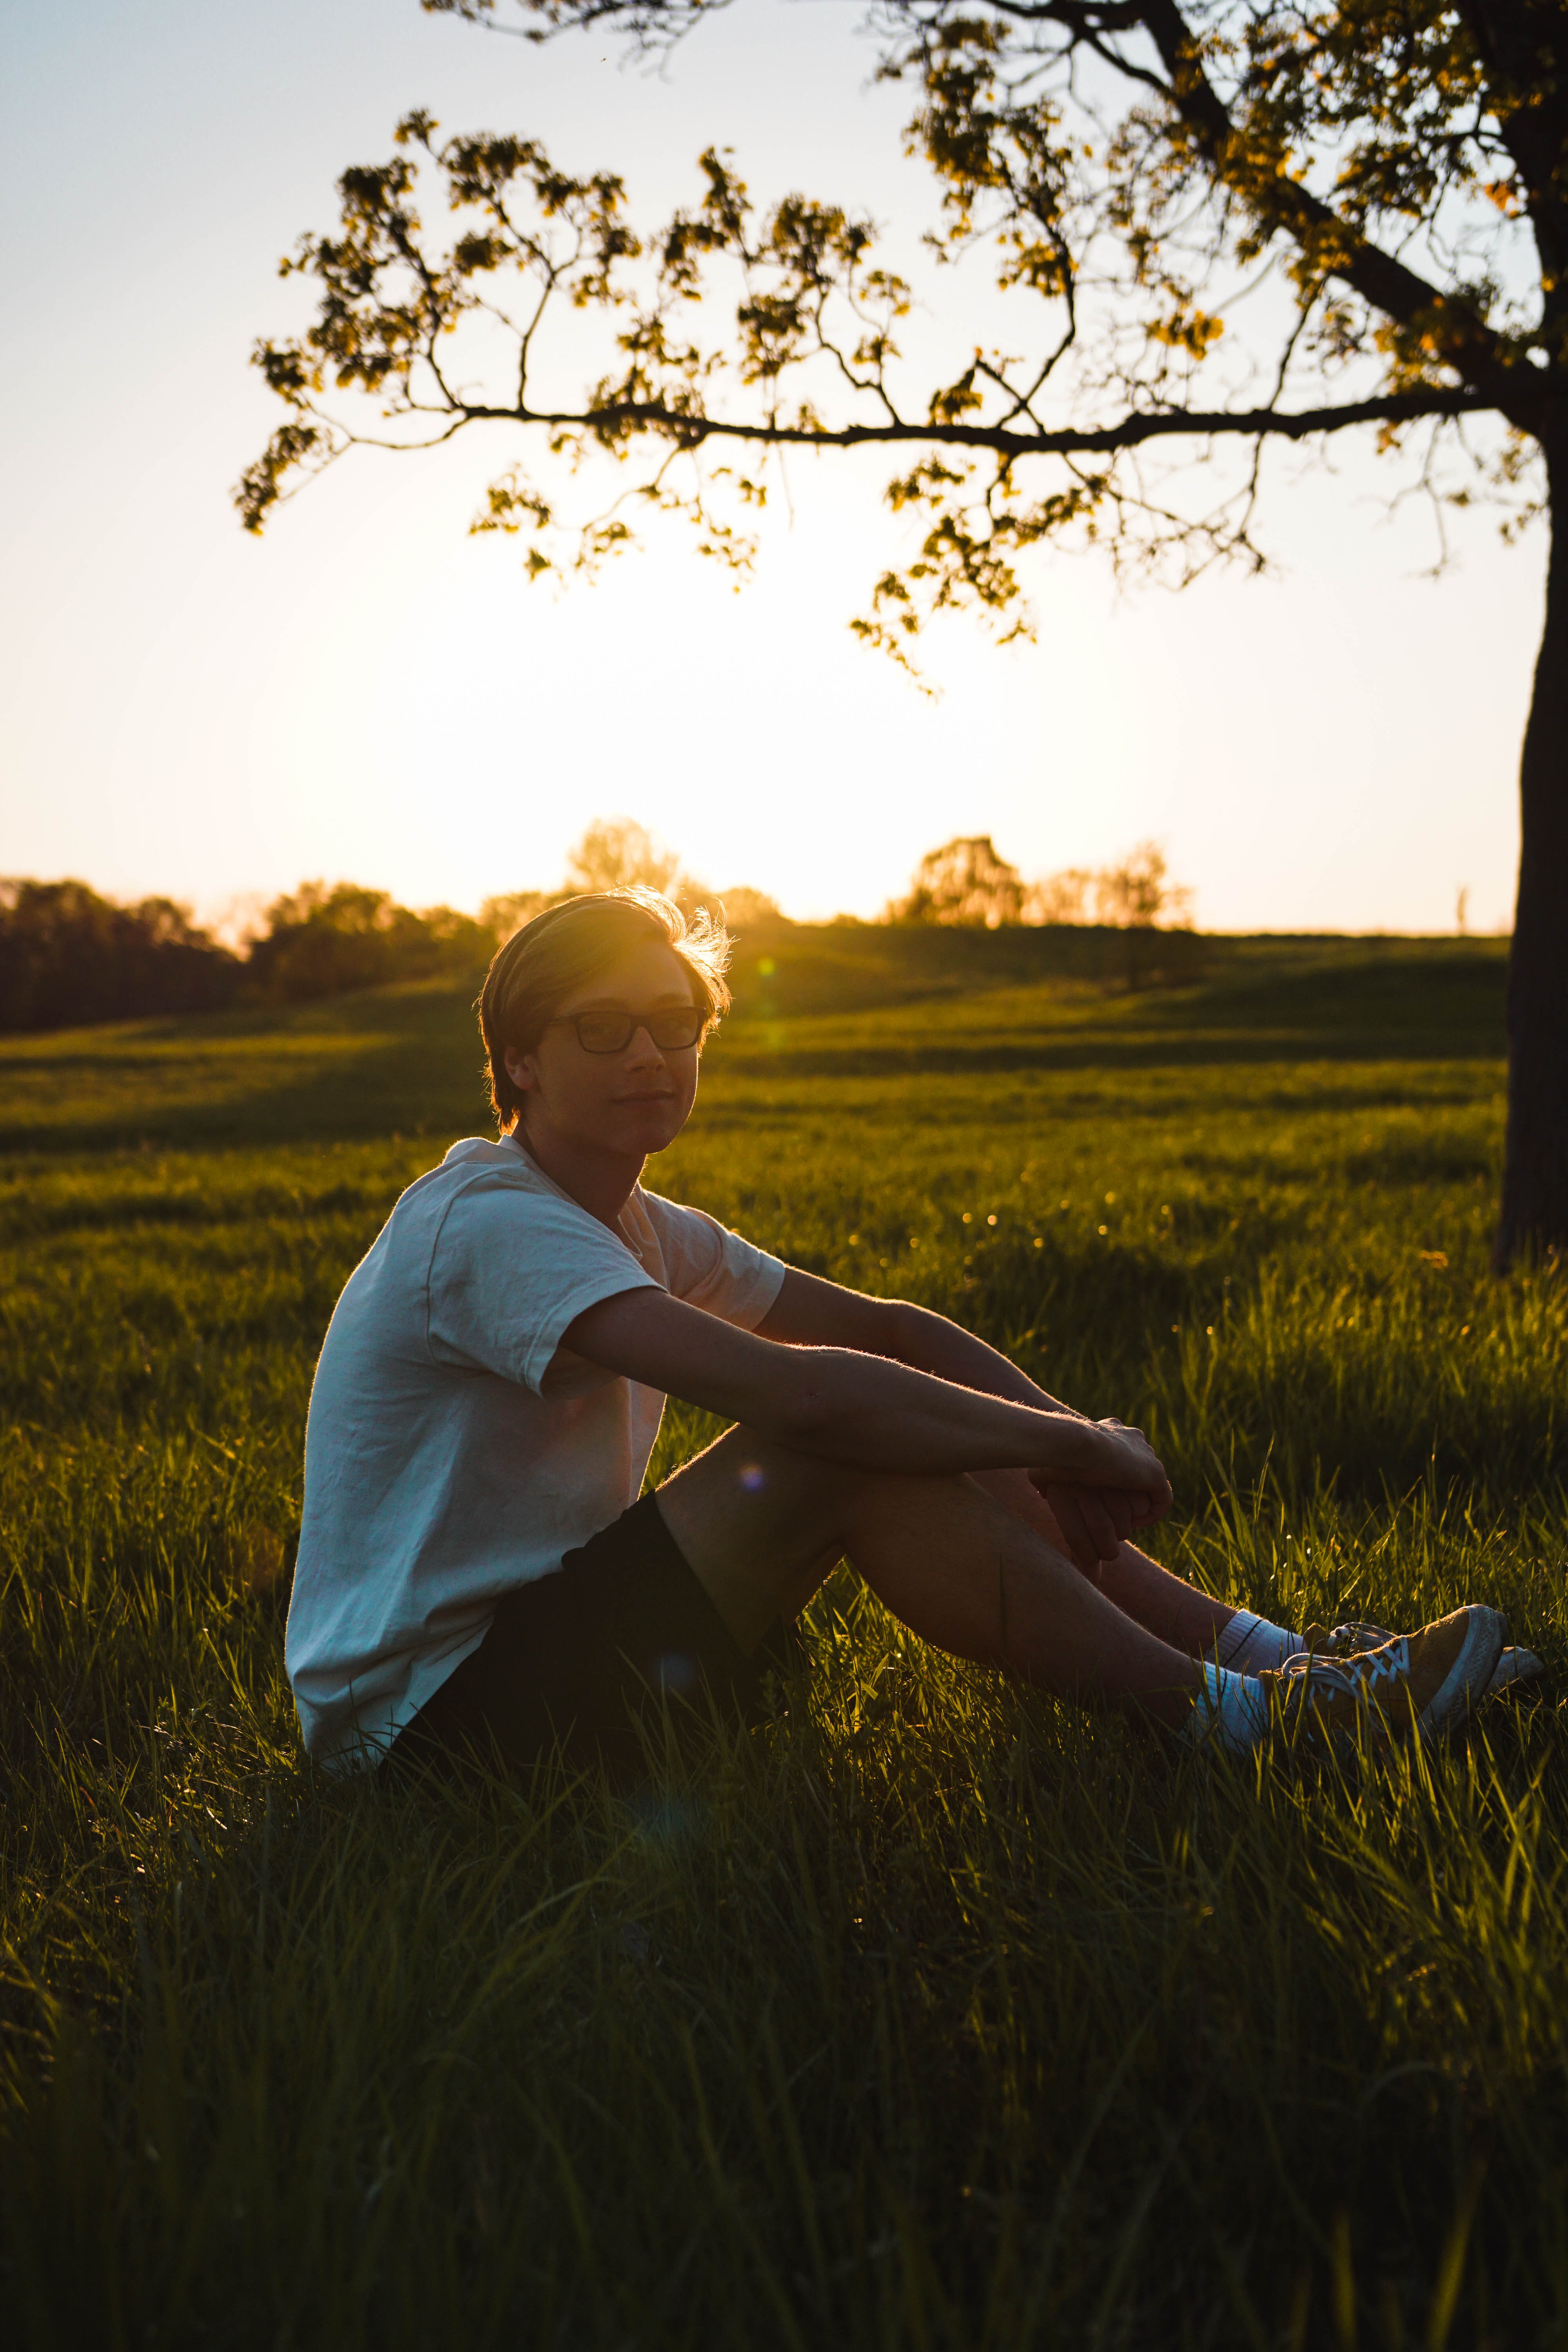 man sitting on grass while resting hand on knee during golden hour